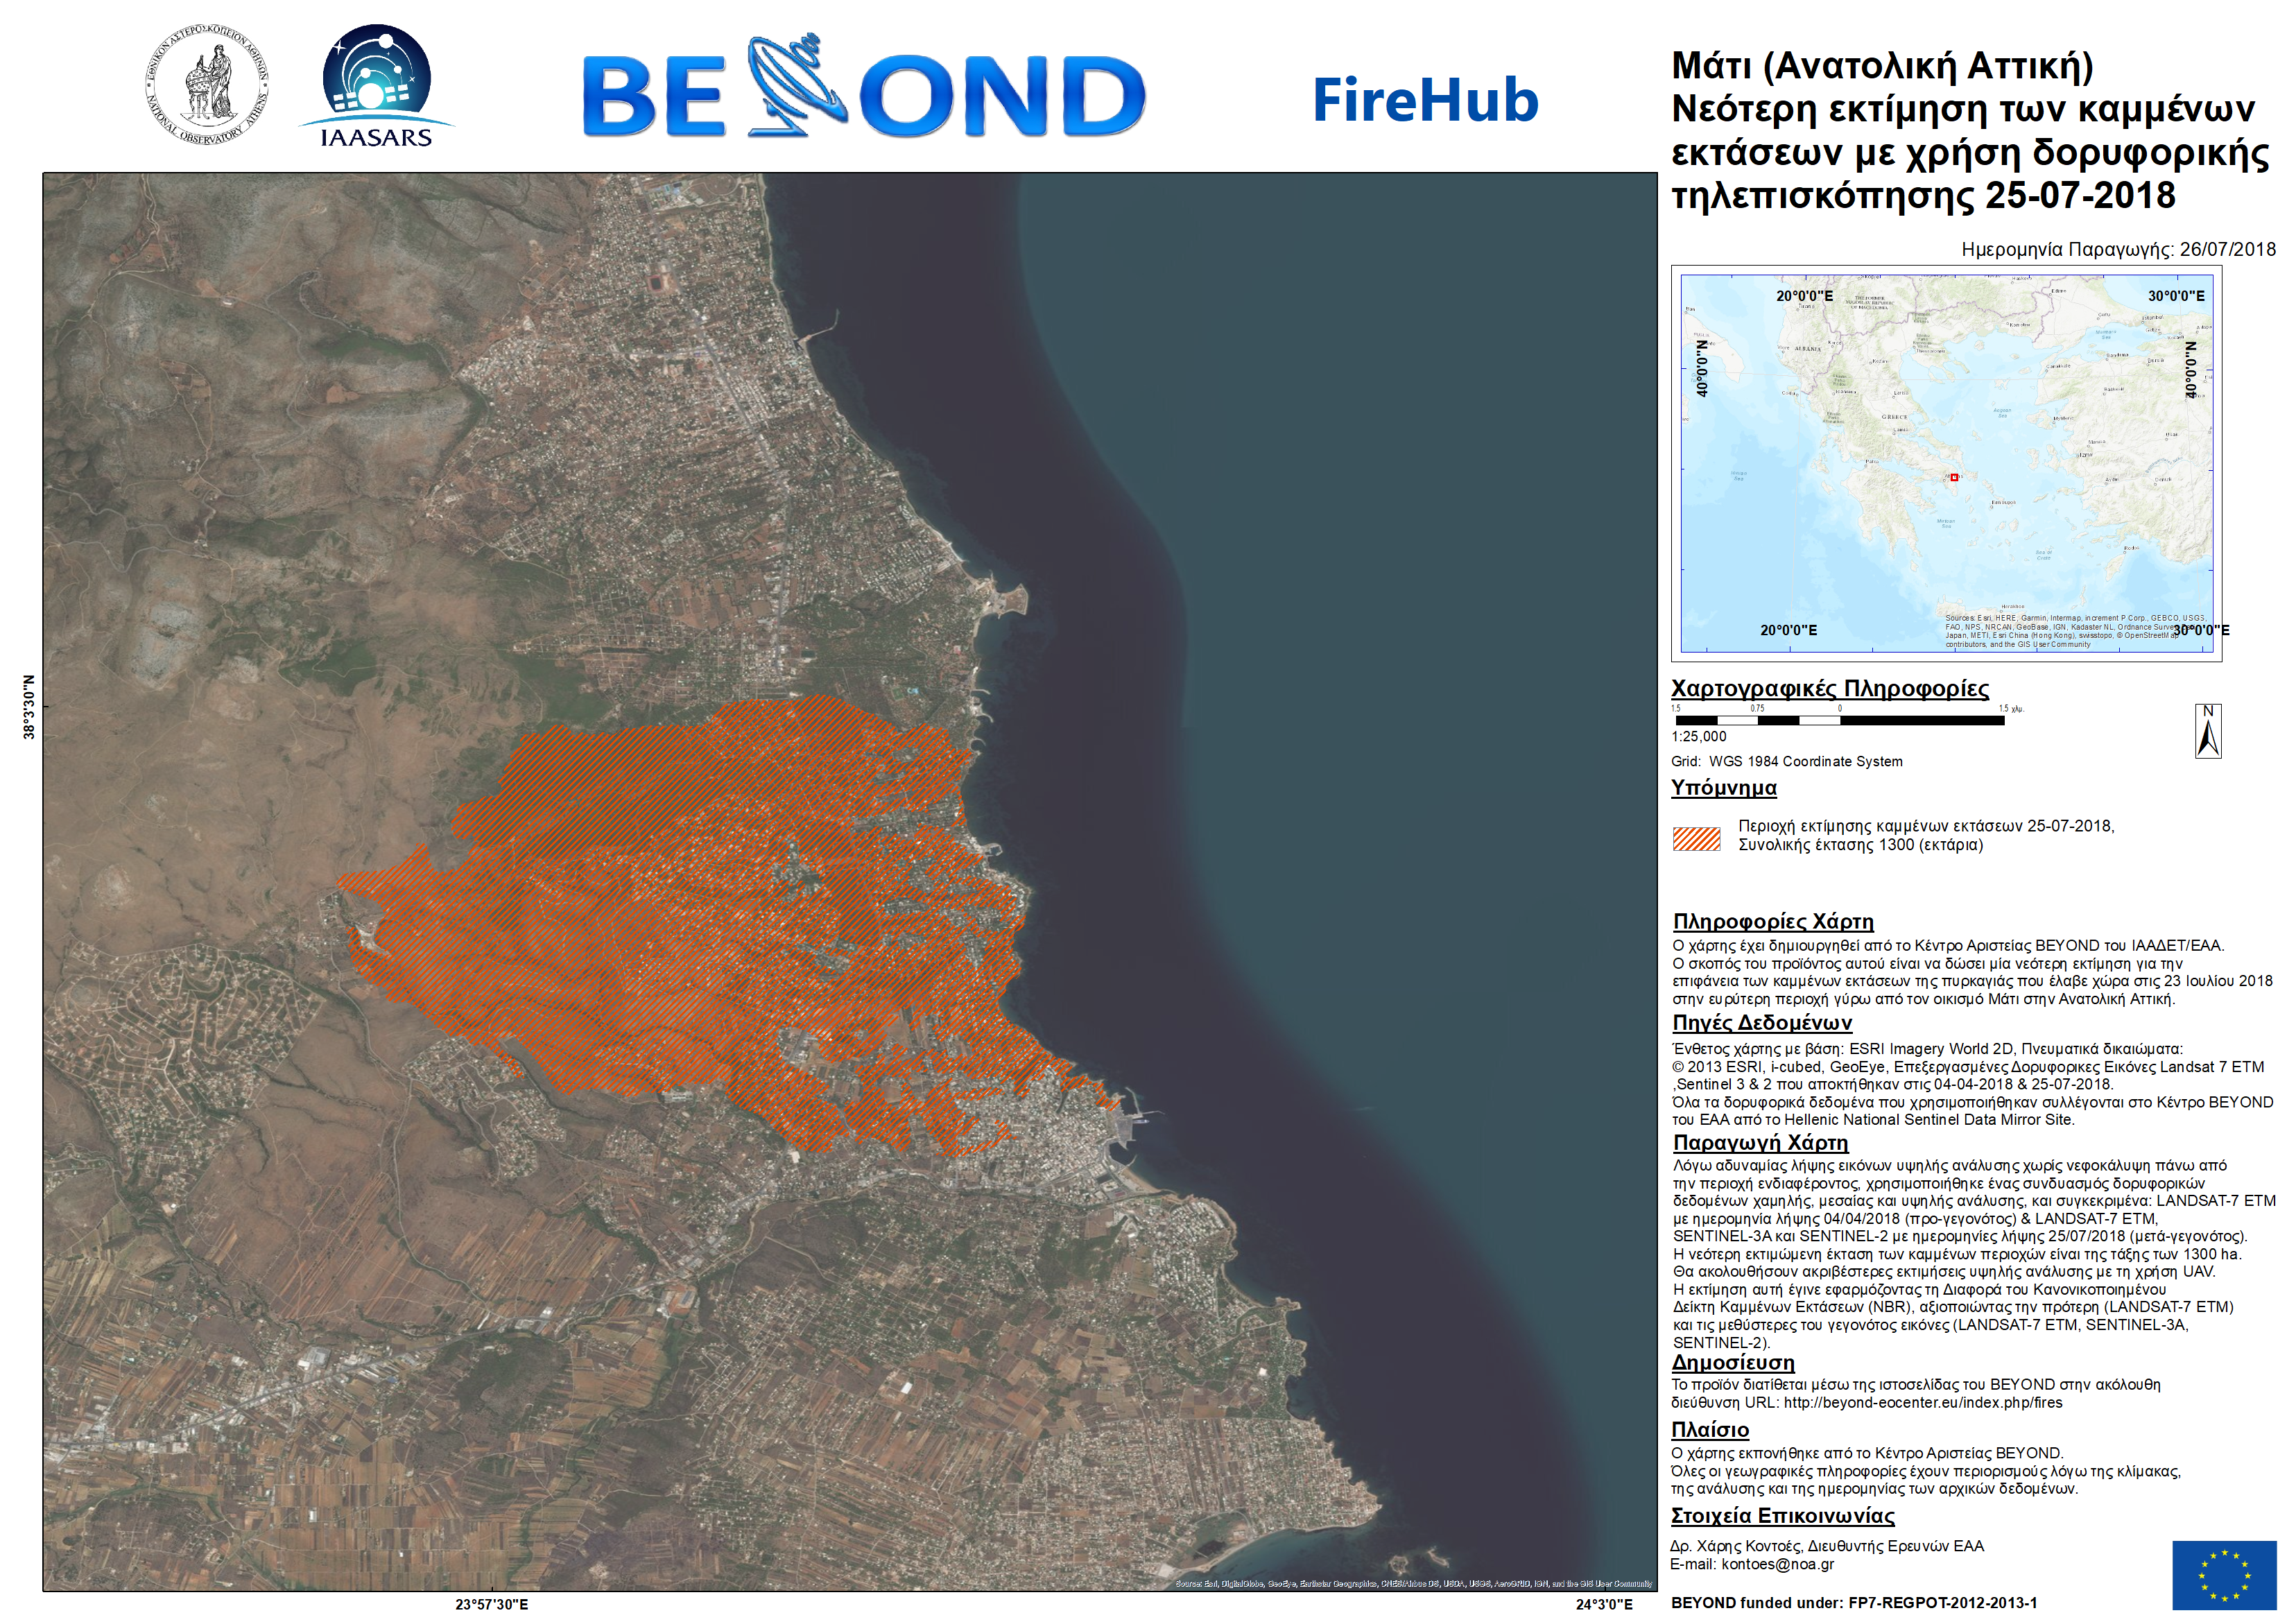 2018 07 26 BEYOND FireDelineationMap Mati 100dpi